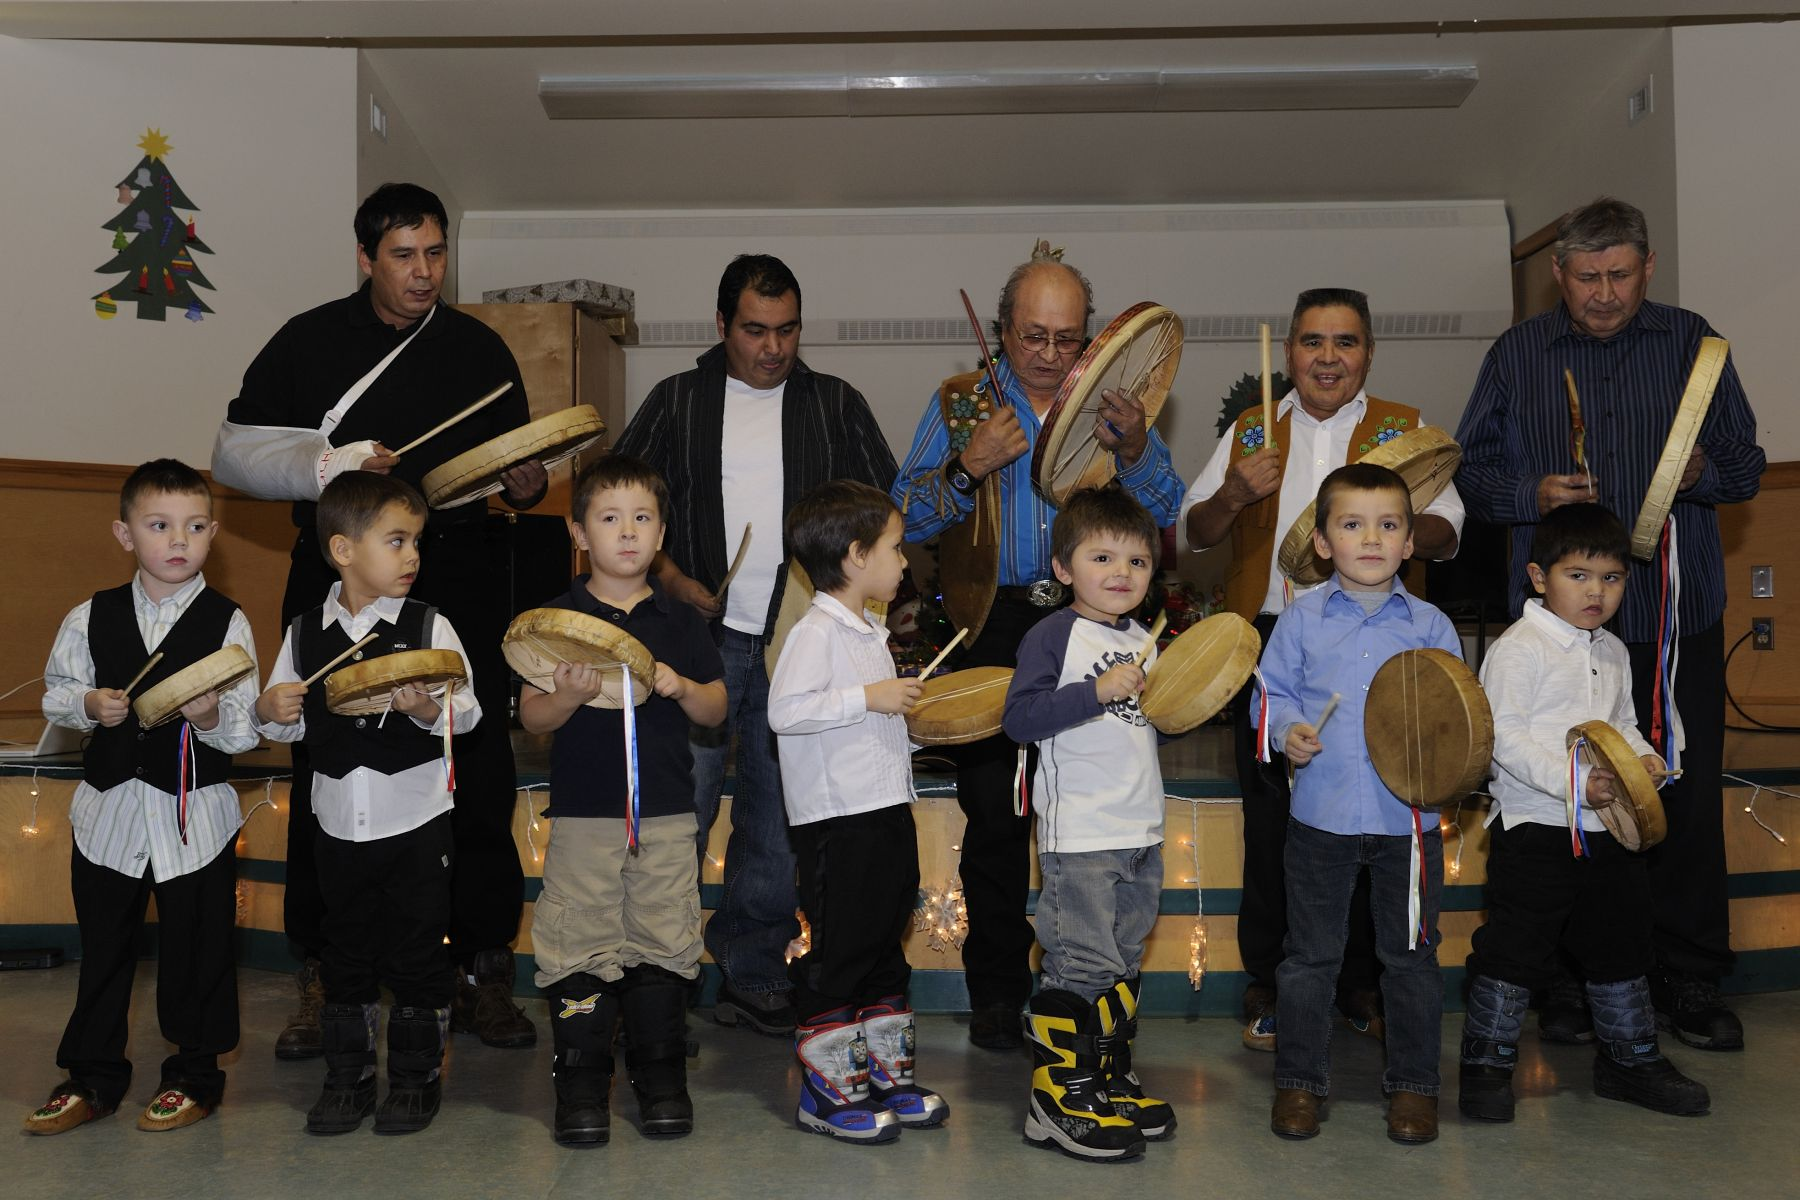 On this special occasion, they experienced the traditions and culture of the Dene community.